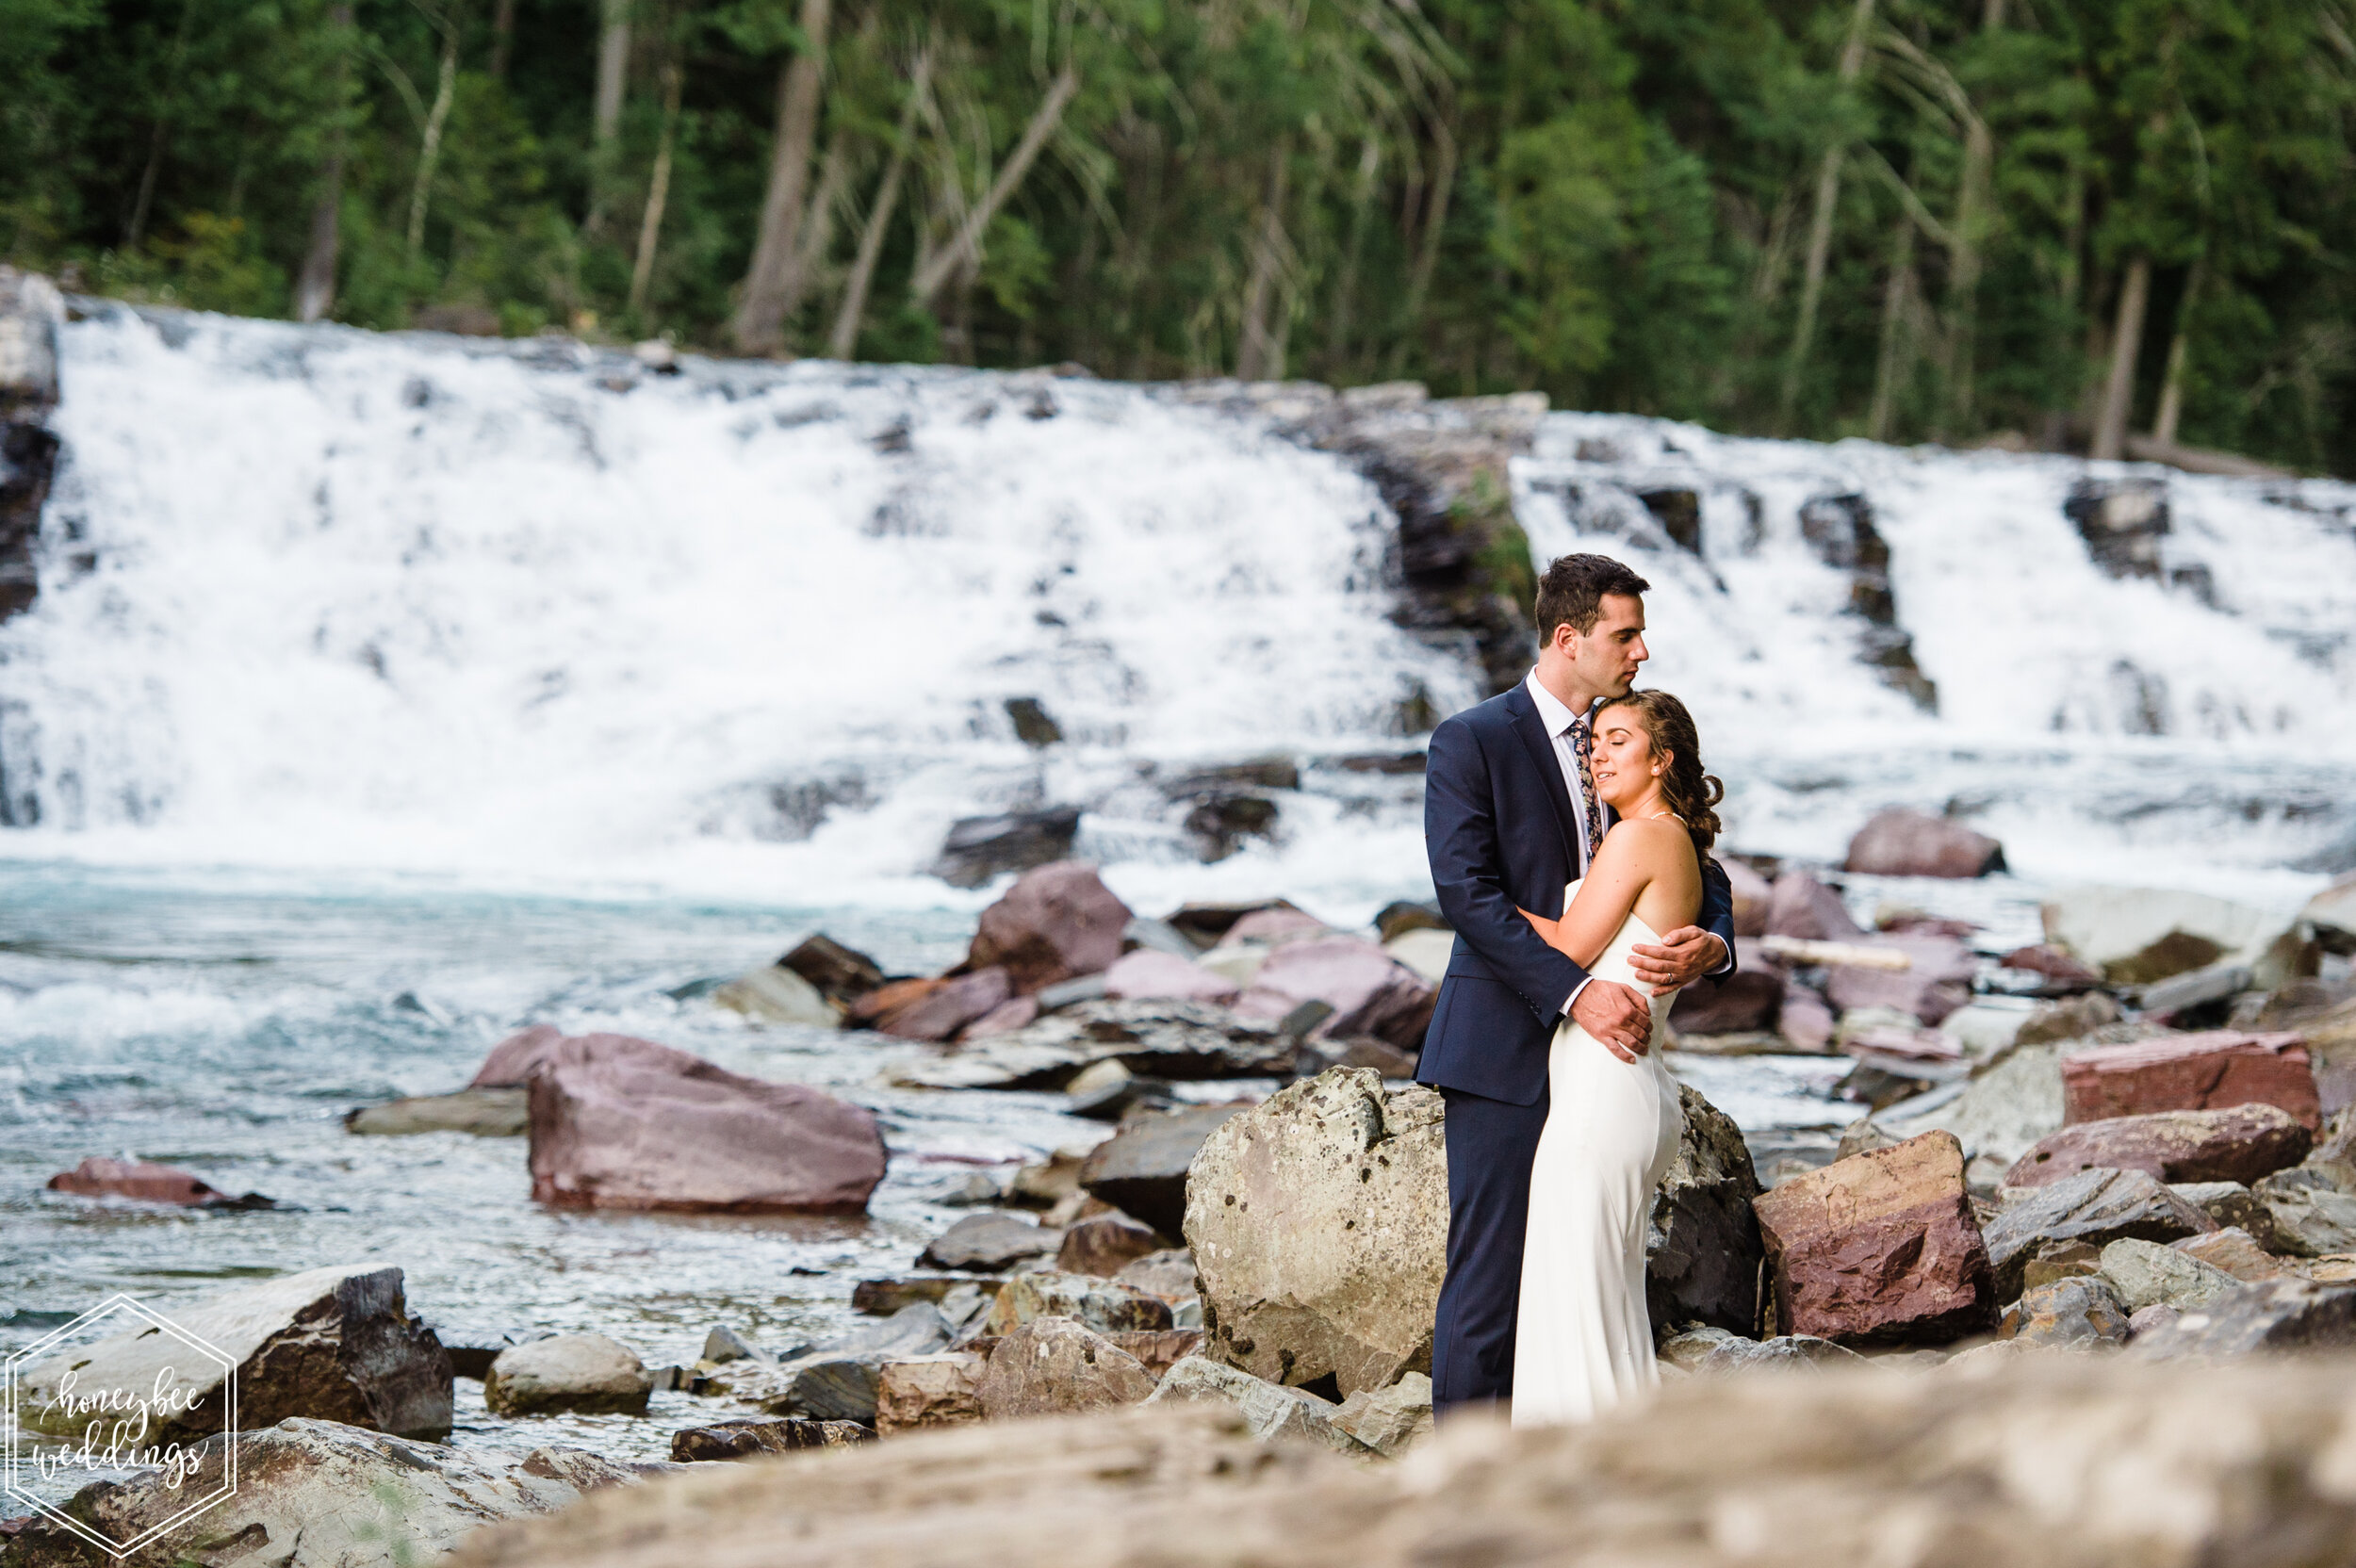 189Glacier National Park Wedding_Glacier Outdoor Center_Honeybee Weddings_Anna & Seth_July 21, 2019-1031.jpg